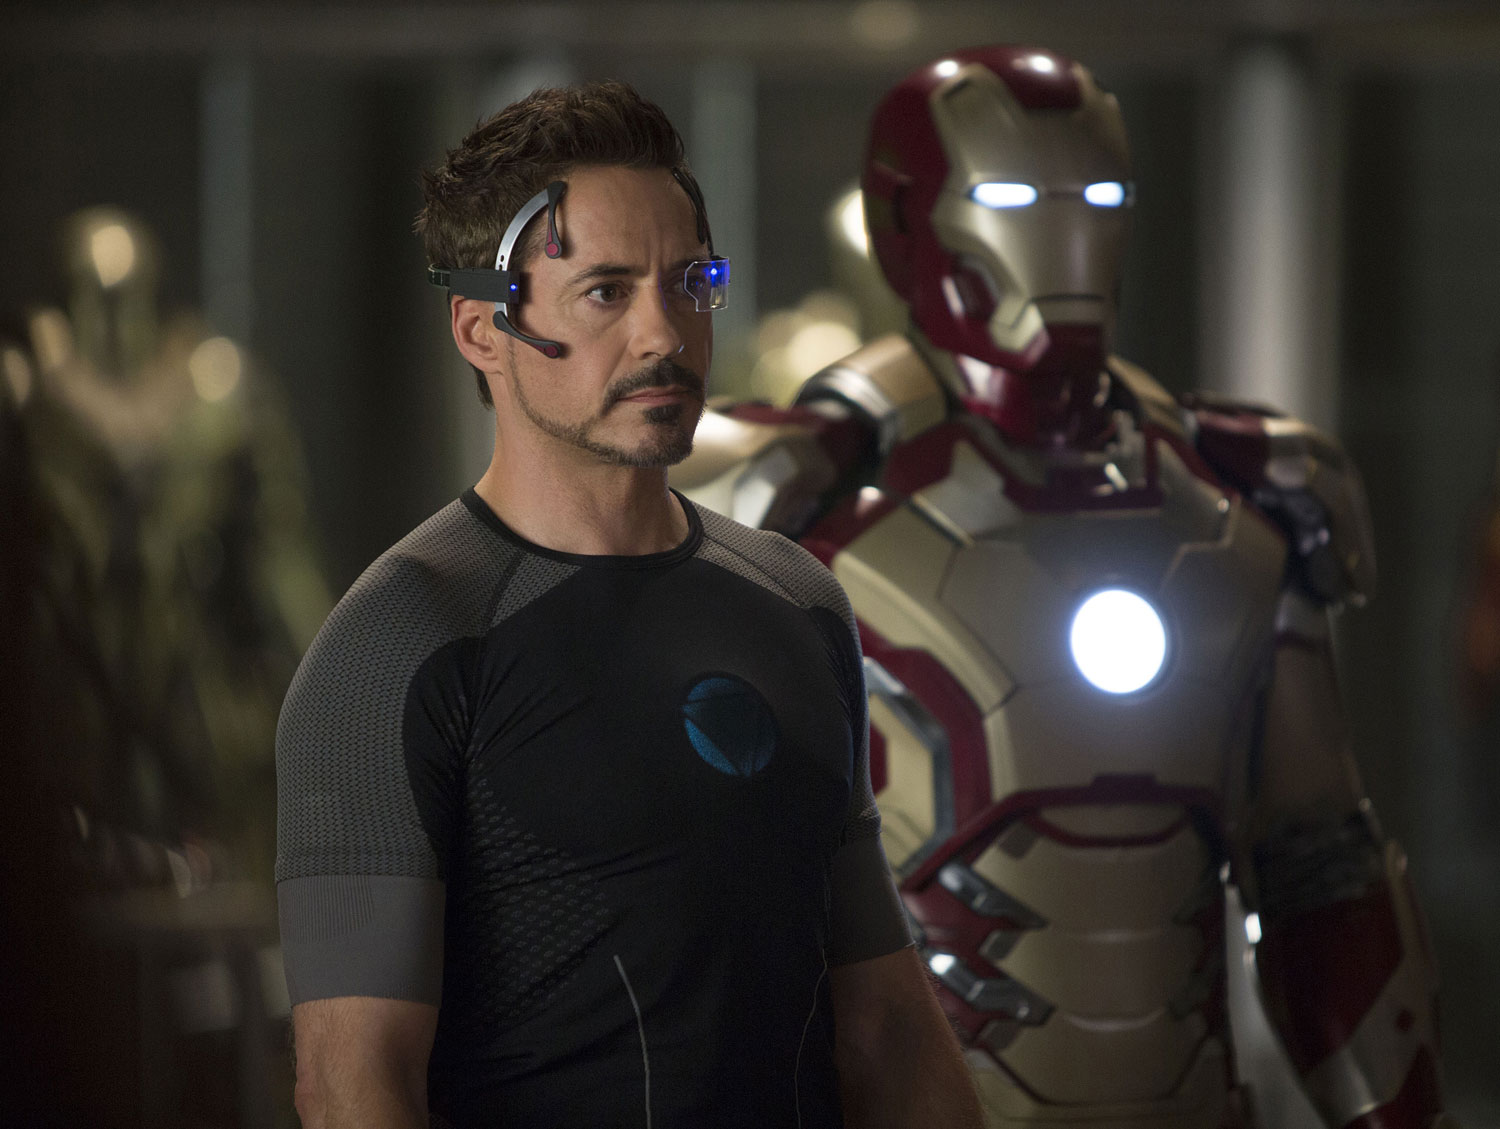 4-IRON-MAN-3-PREMIERES-IMAGES